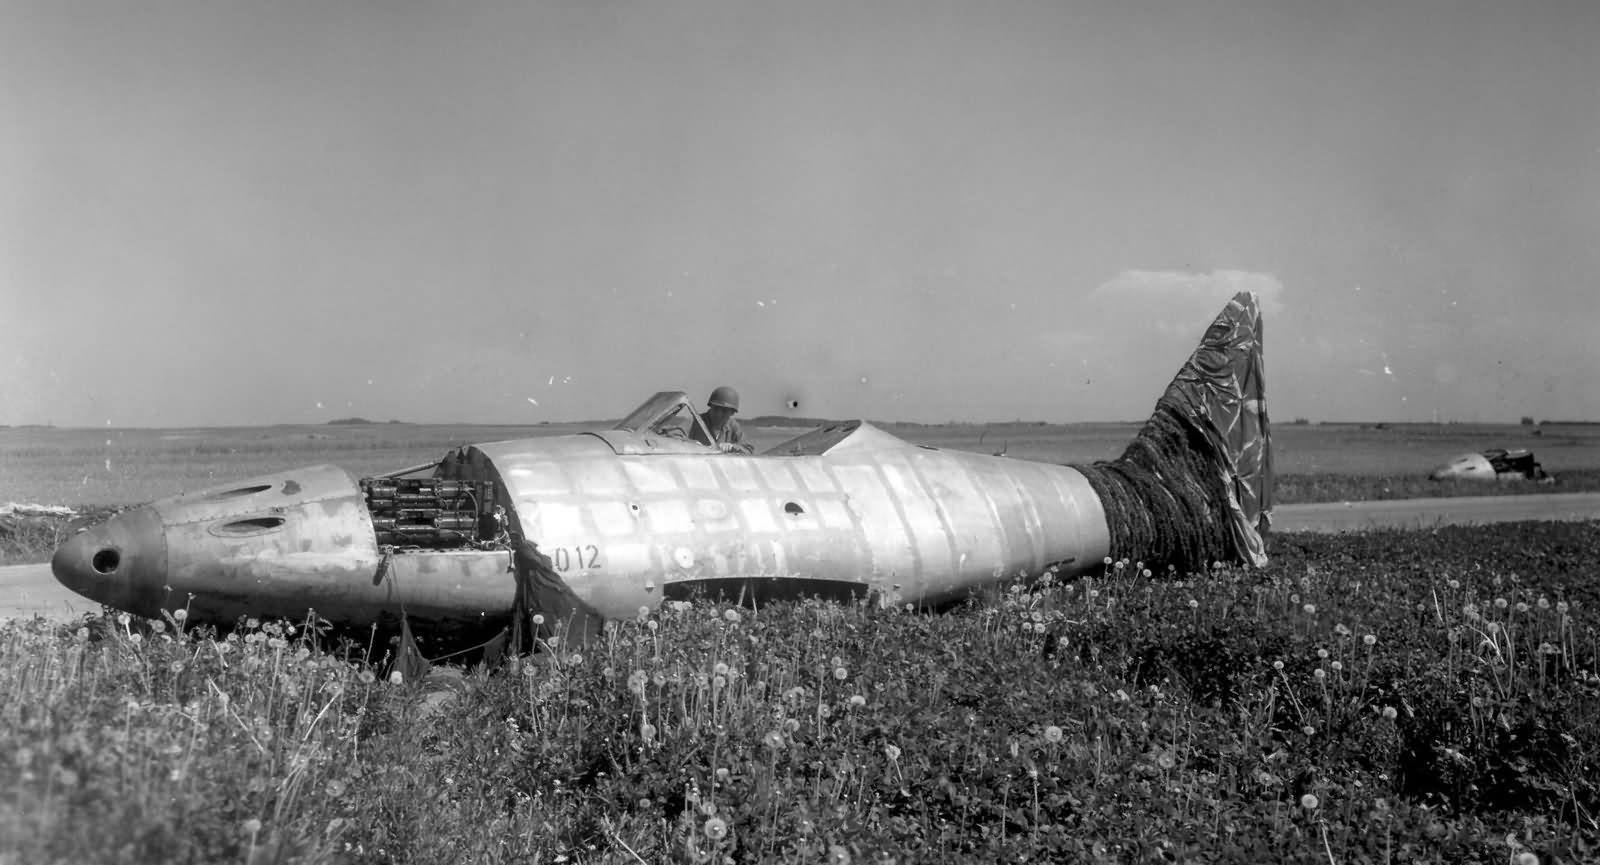 Me262 jet fighter found by the 14th Armored Division